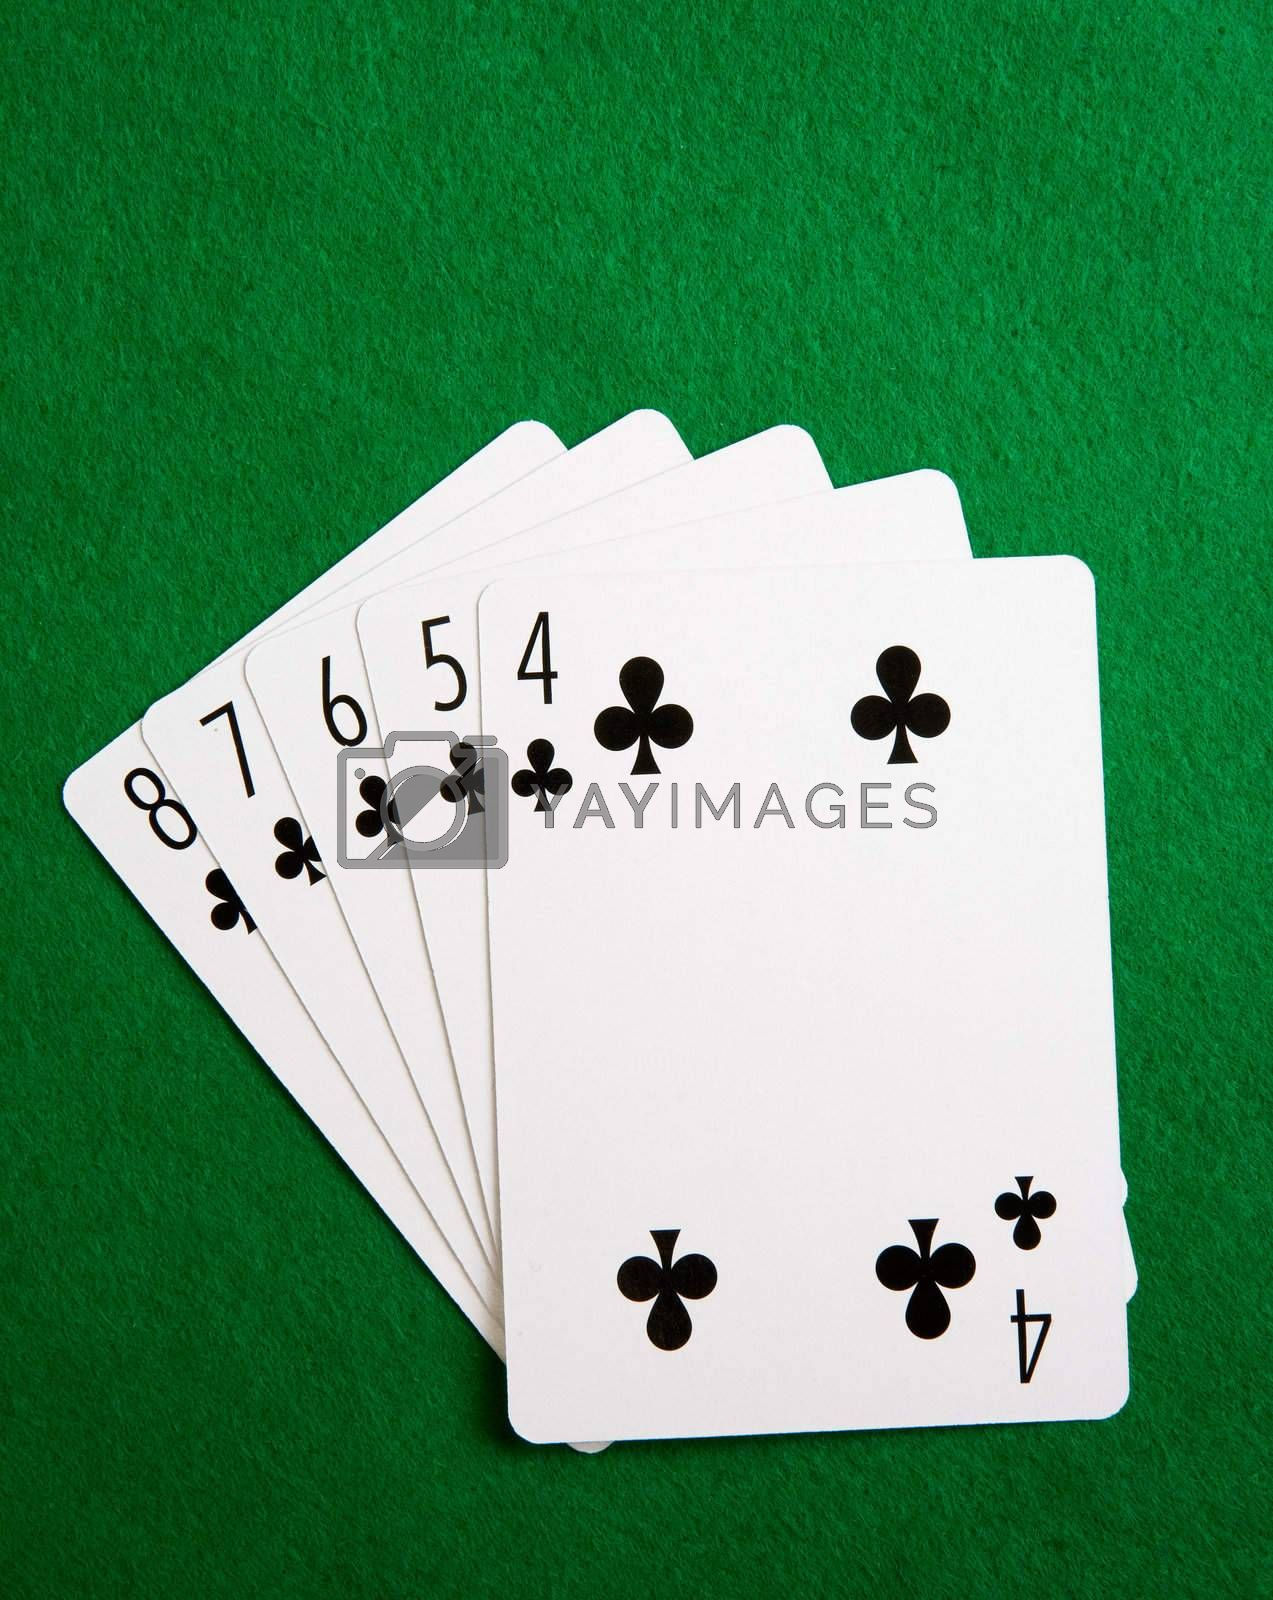 A straight flush in the suit of clubs